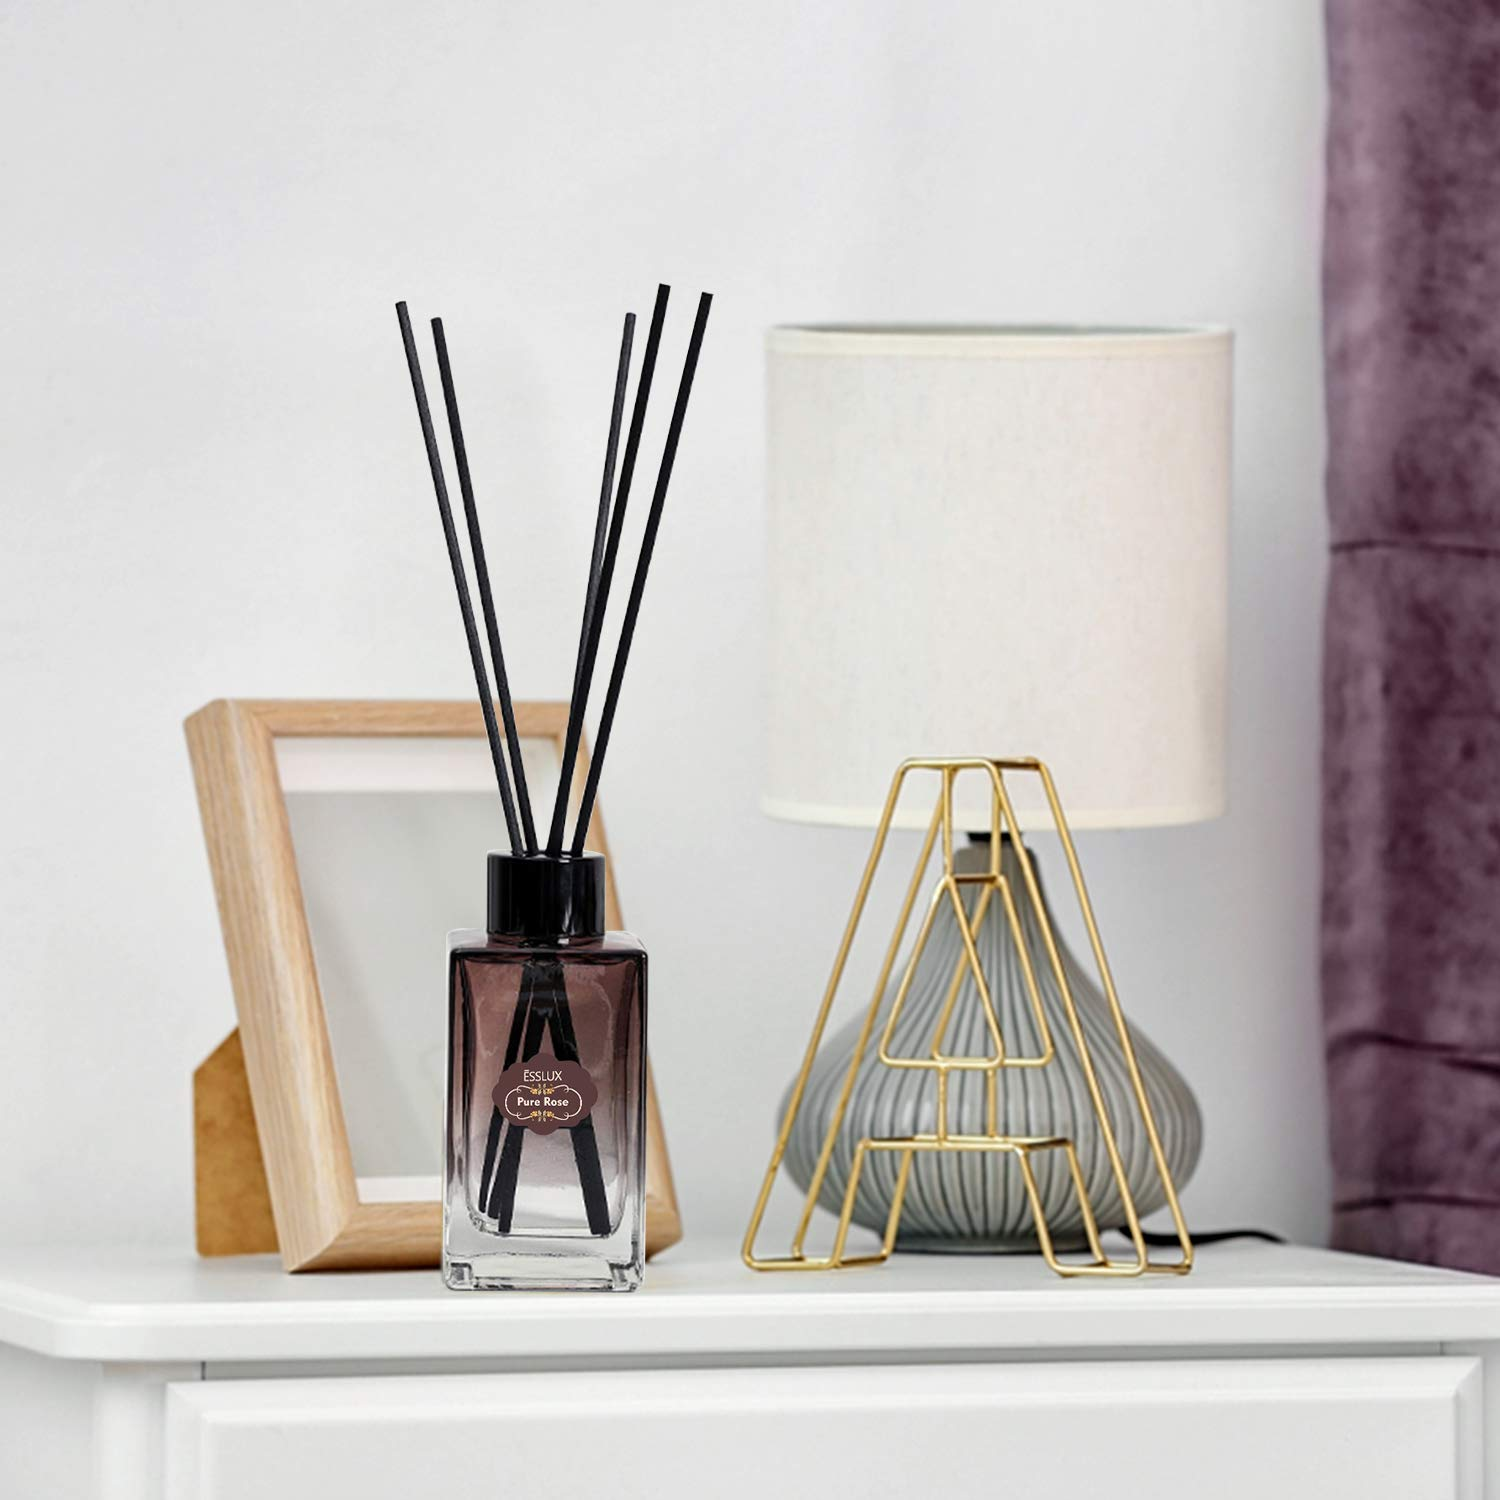 ESSLUX Scent Diffuser, Room Reed Diffuser Premium Quality for Home and Office, Air Freshener & Home Decor & Ideal Gift-Pure Rose by ESSLUX (Image #3)